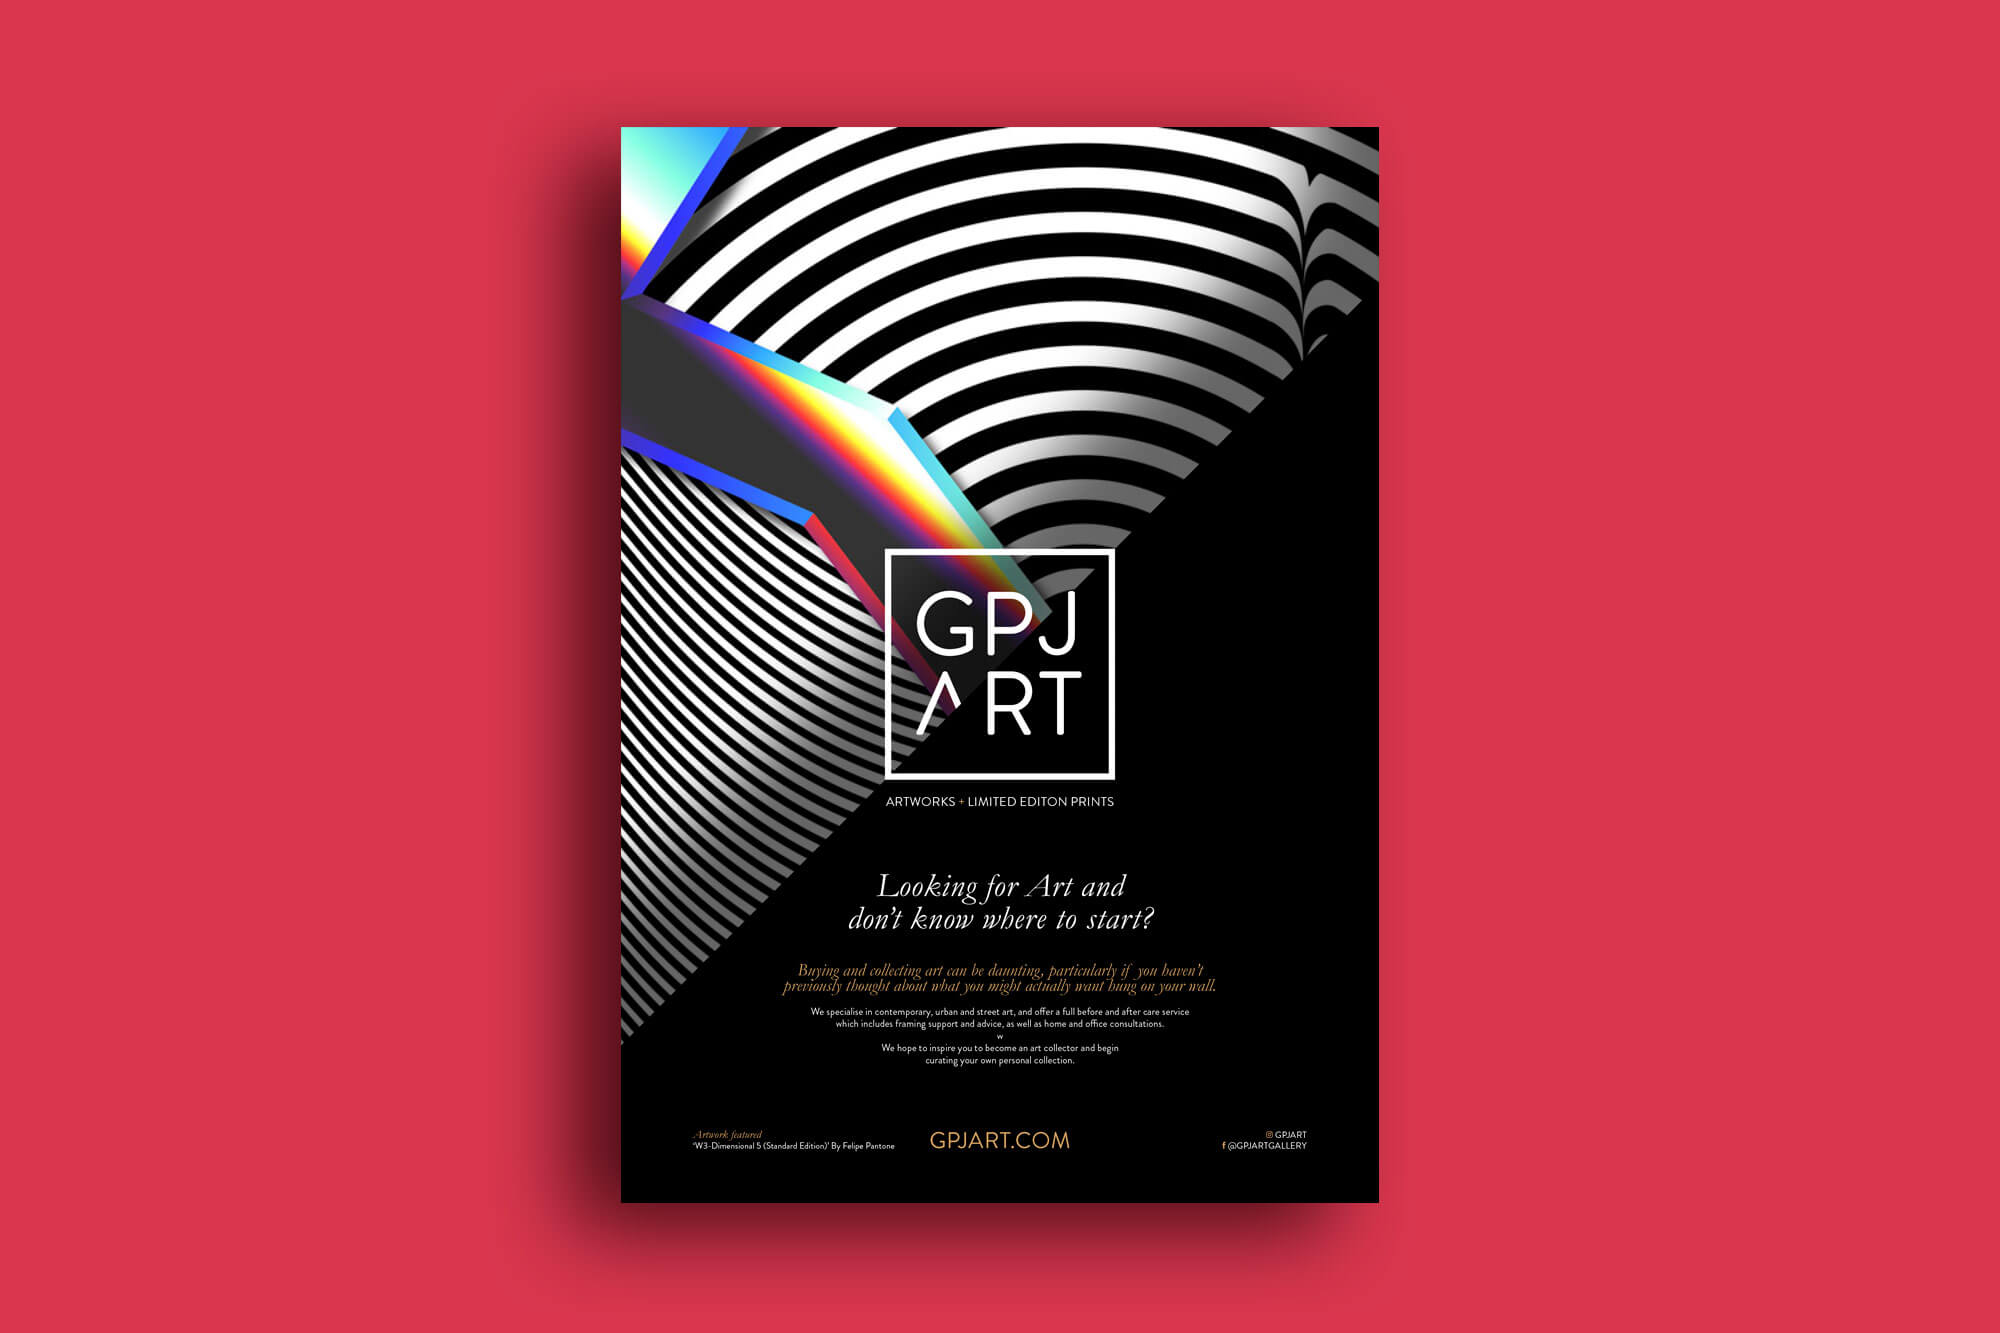 gpj-studio-design-gpj-art-cs-13